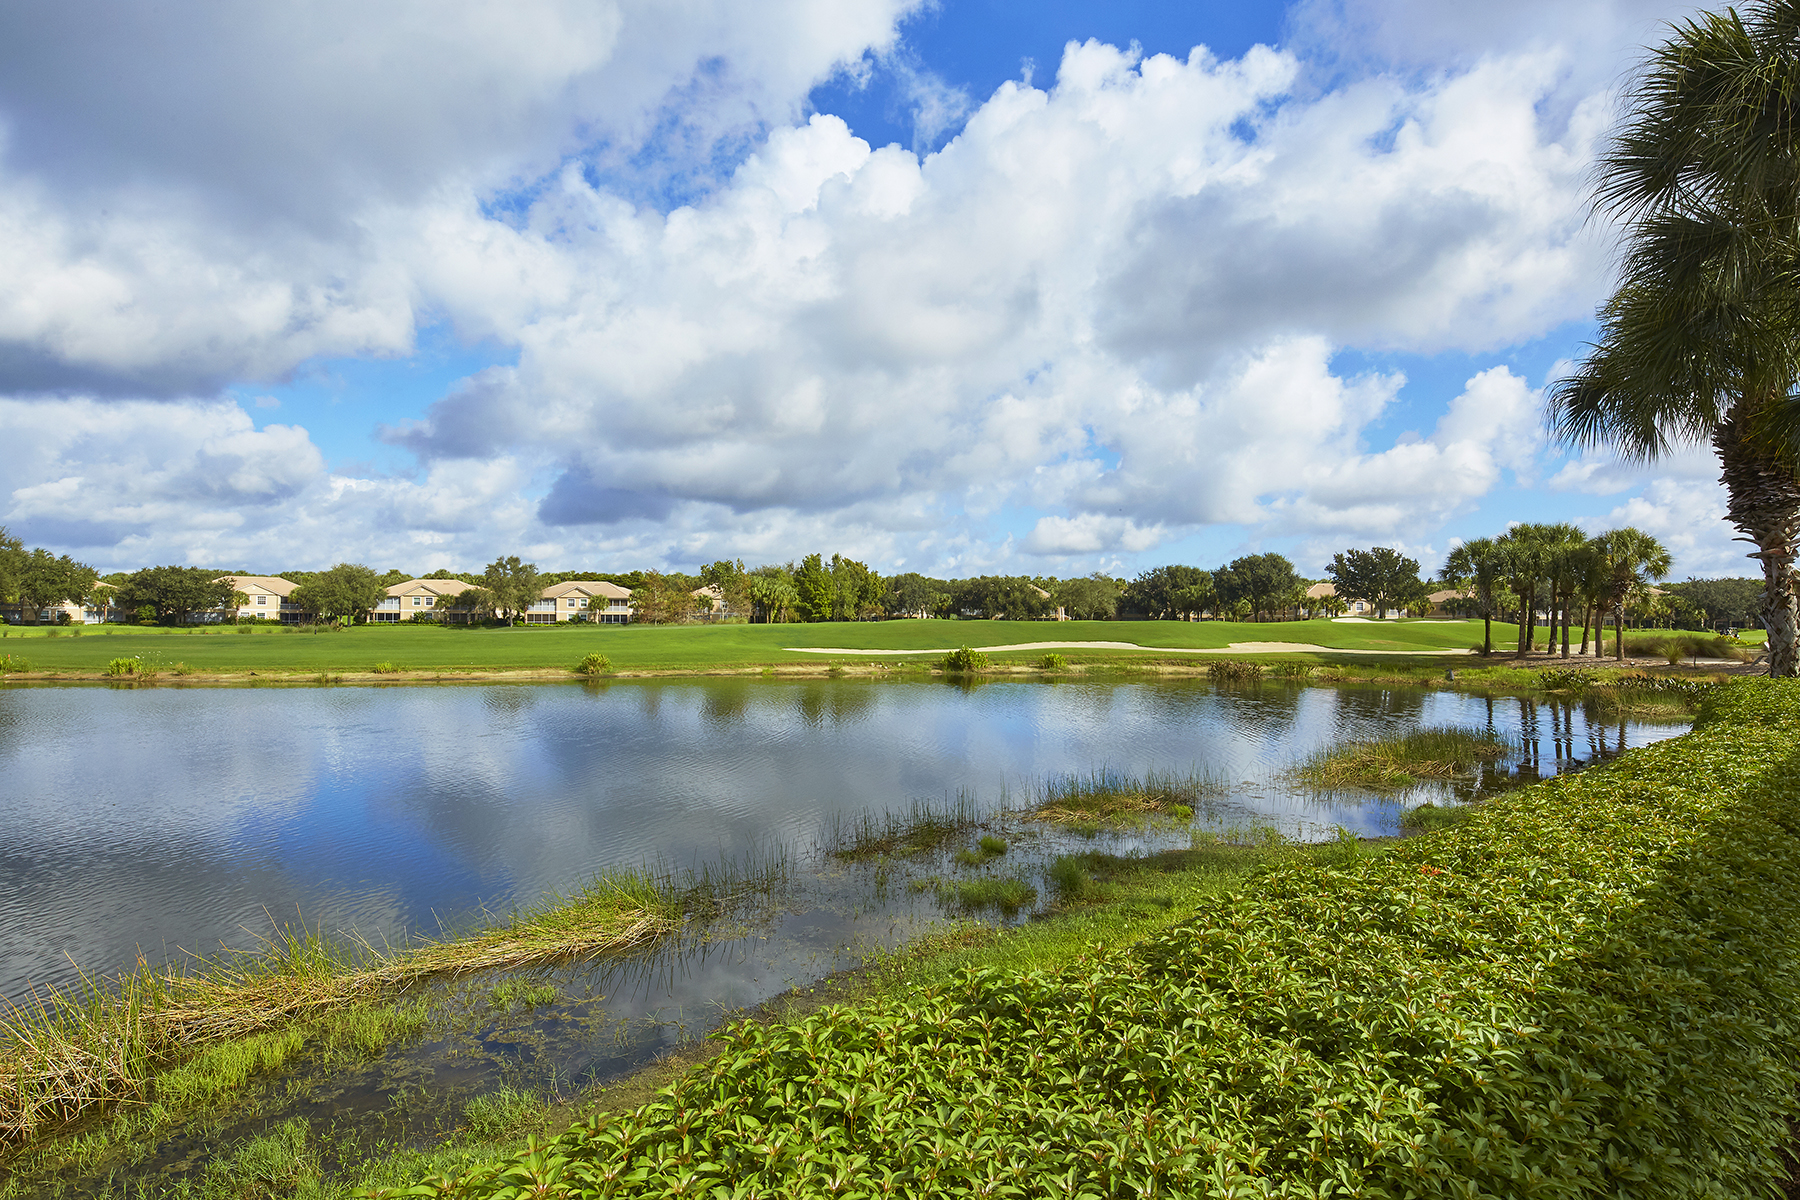 Single Family Homes for Sale at SHADOW WOOD AT THE BROOKS - HAWTHORNE 9054 Windswept Drive, Estero, Florida 34135 United States